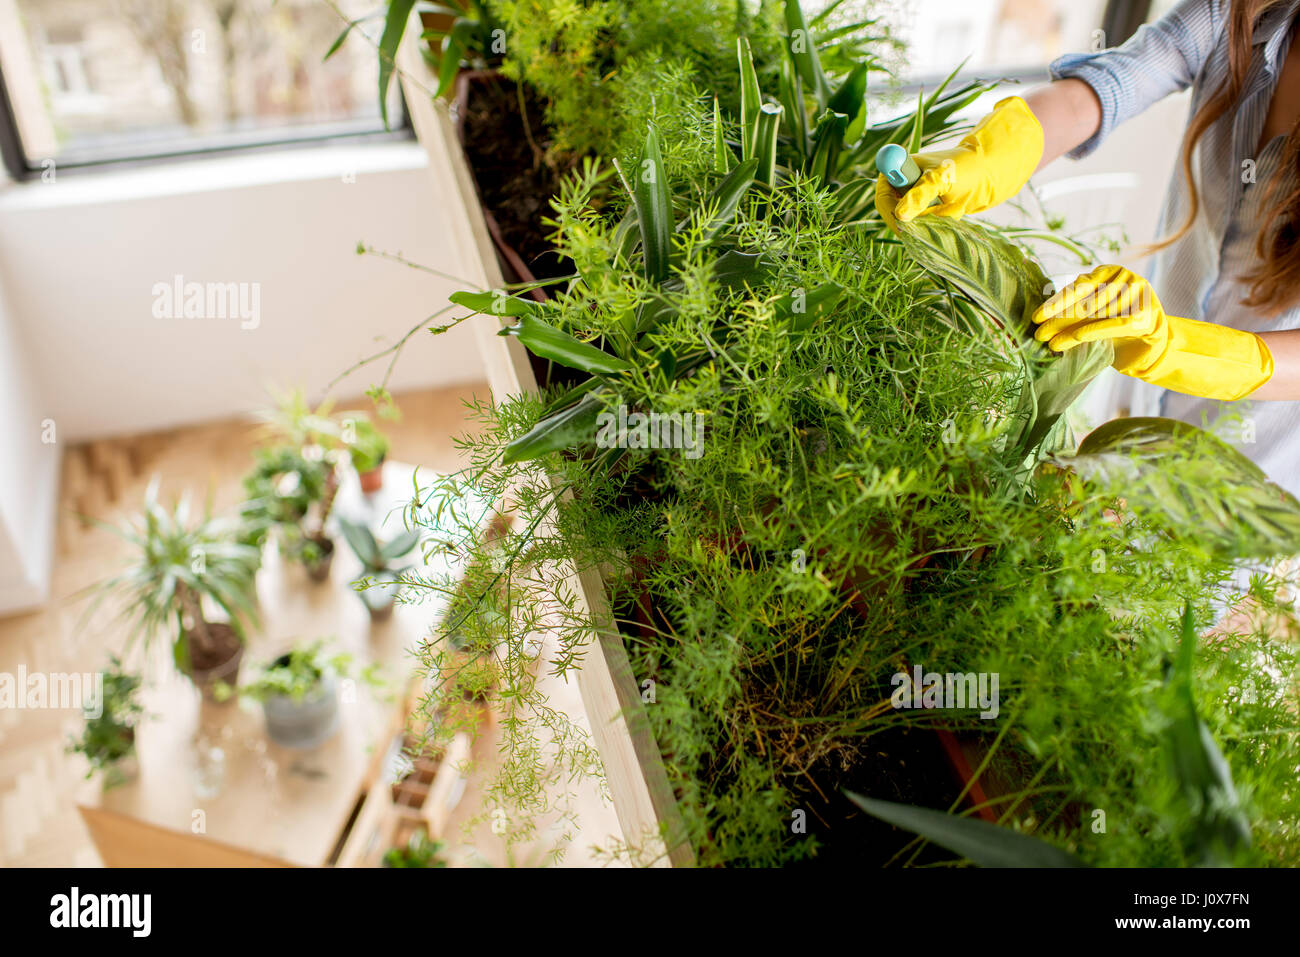 Taking care of plants Stock Photo